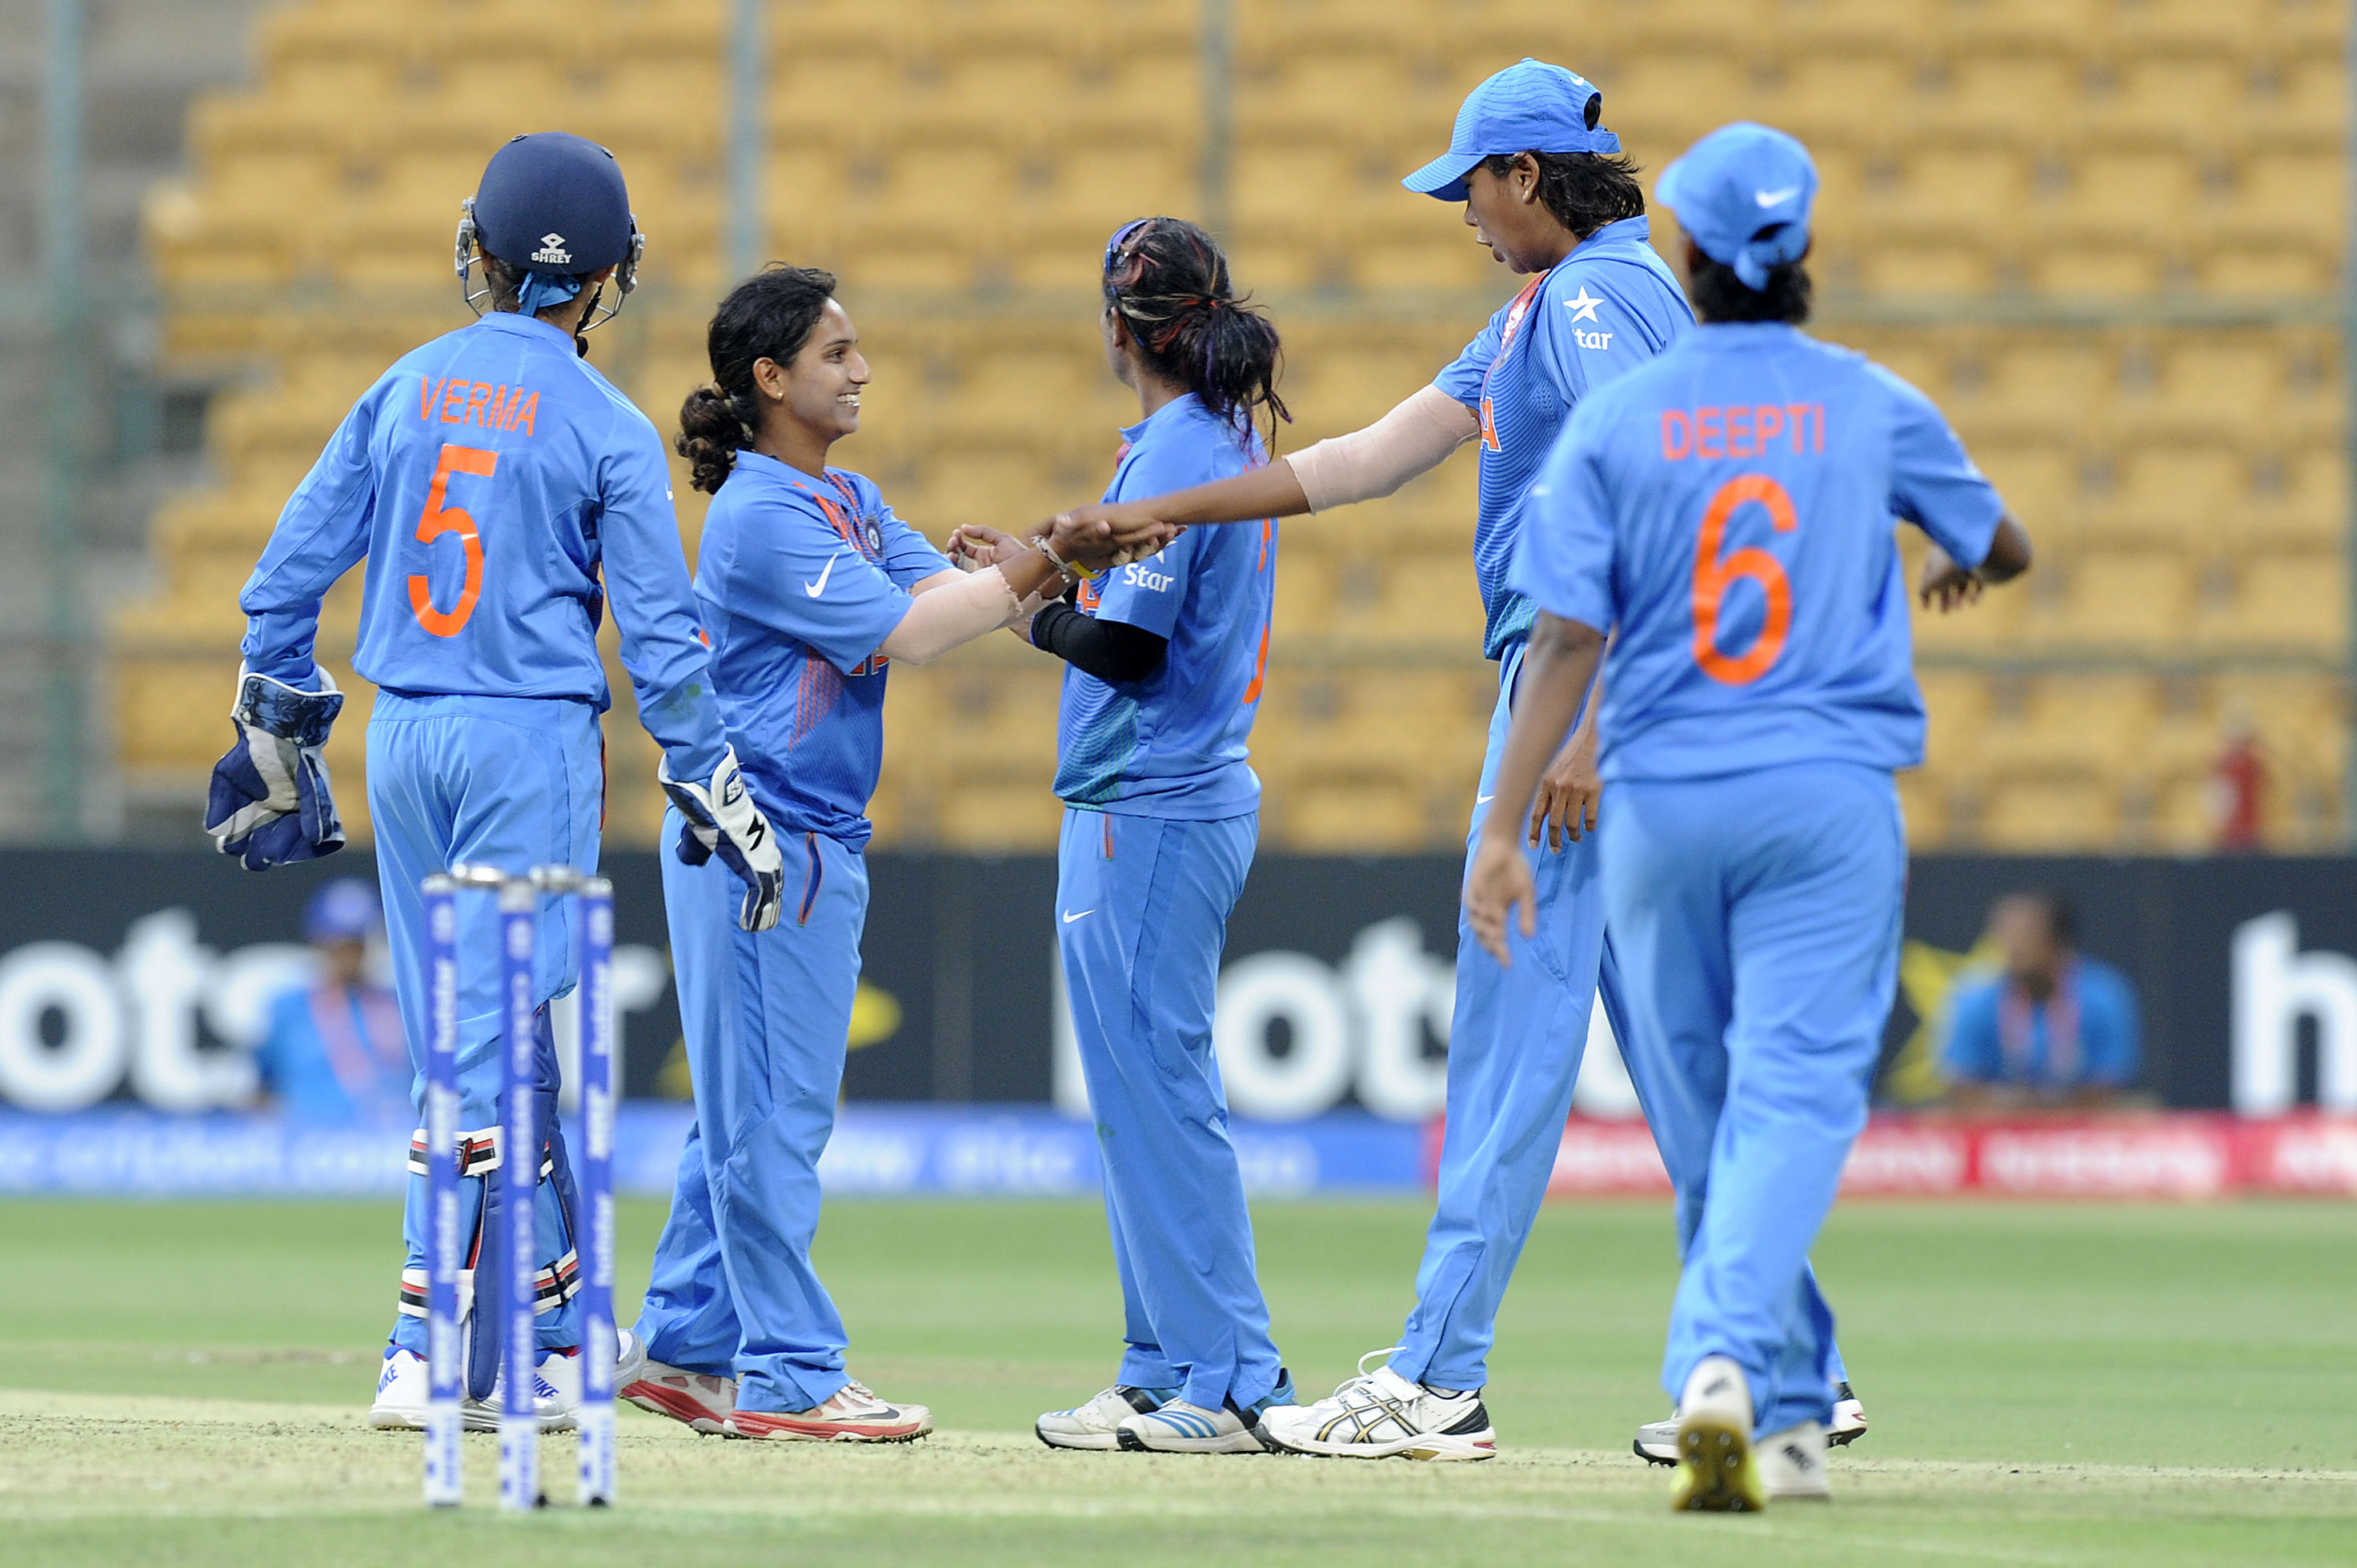 """""""Bangalore, INDIA - MARCH 15 : Anuja Patil of India celebrates the wicket of Fahima Khatun of Bangladesh during the Women's ICC World Twenty20 India 2016 match between India and Bangladesh at the Chinnaswamy stadium on March 15, 2016 in Bangalore, India. (Photo by Pal Pillai/IDI via Getty Images).."""""""